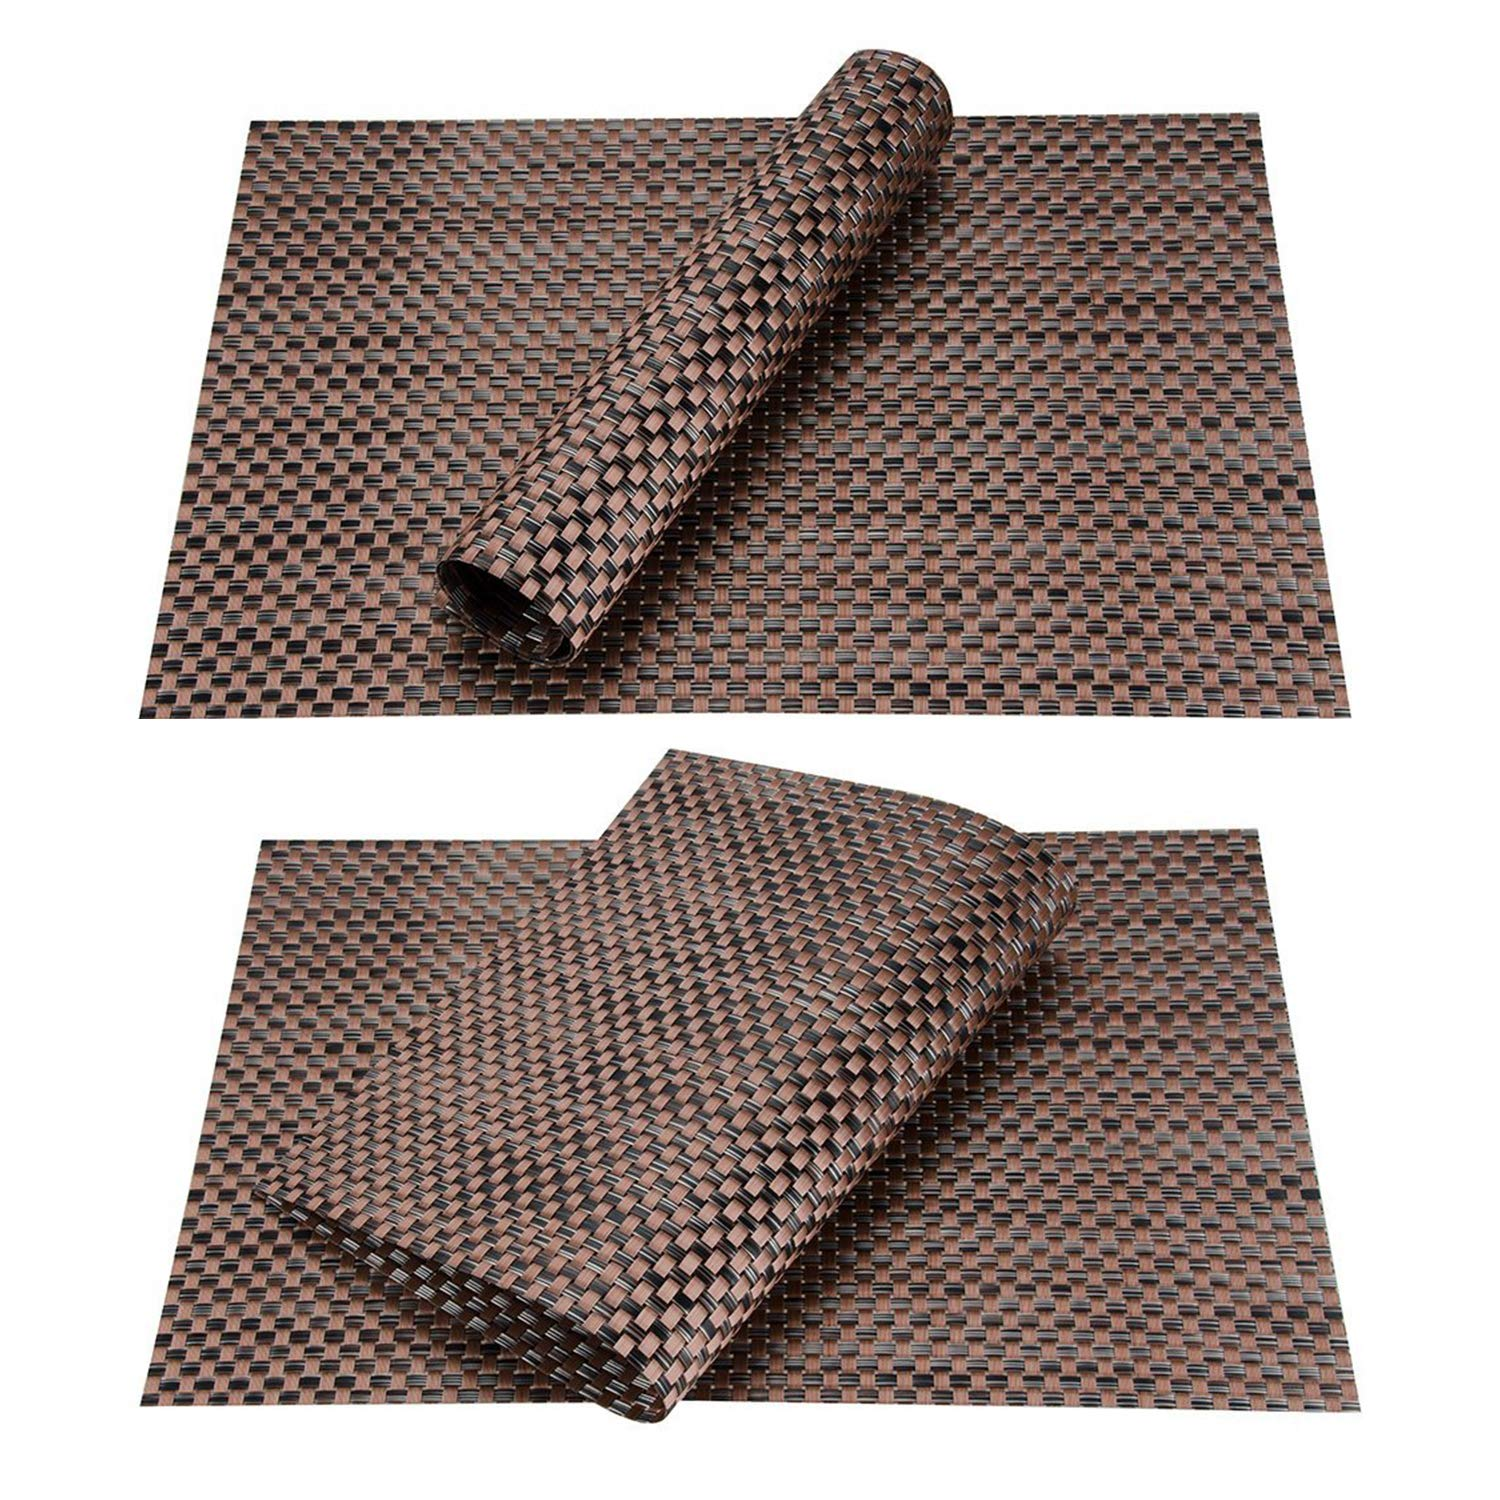 Top Finel Table Mats Sets Crossweave PVC Washable Stain Resistant Durable Dining Table Outdoor,Brown,Set of 8 by Top Finel (Image #6)